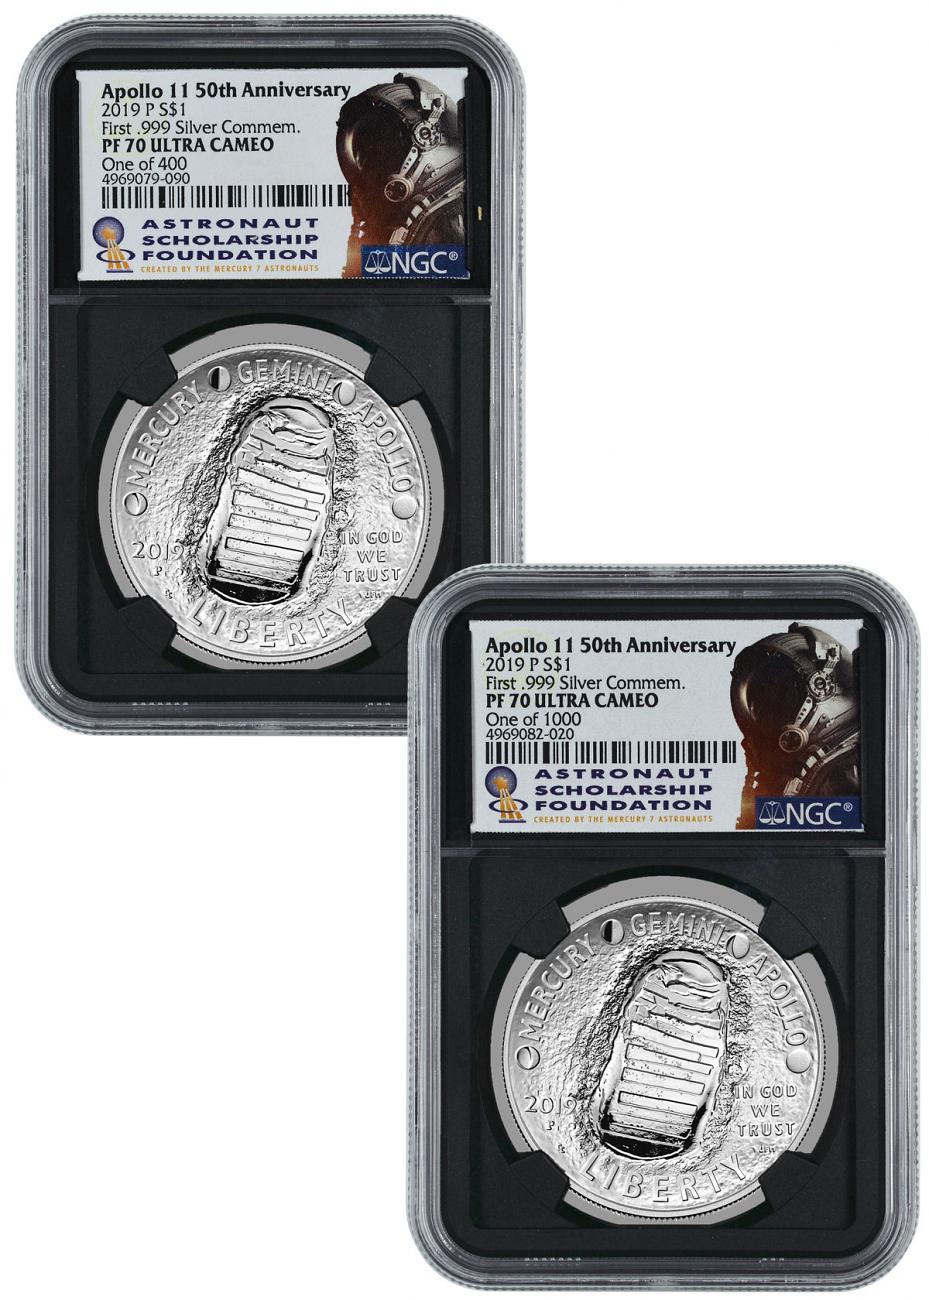 2-Piece Set - 2019-P US Apollo 11 50th Anniversary Commemorative Silver Dollar Proof Coins NGC PF70 UC Astronaut Scholarship Foundation Bobko & Haley Signed Labels